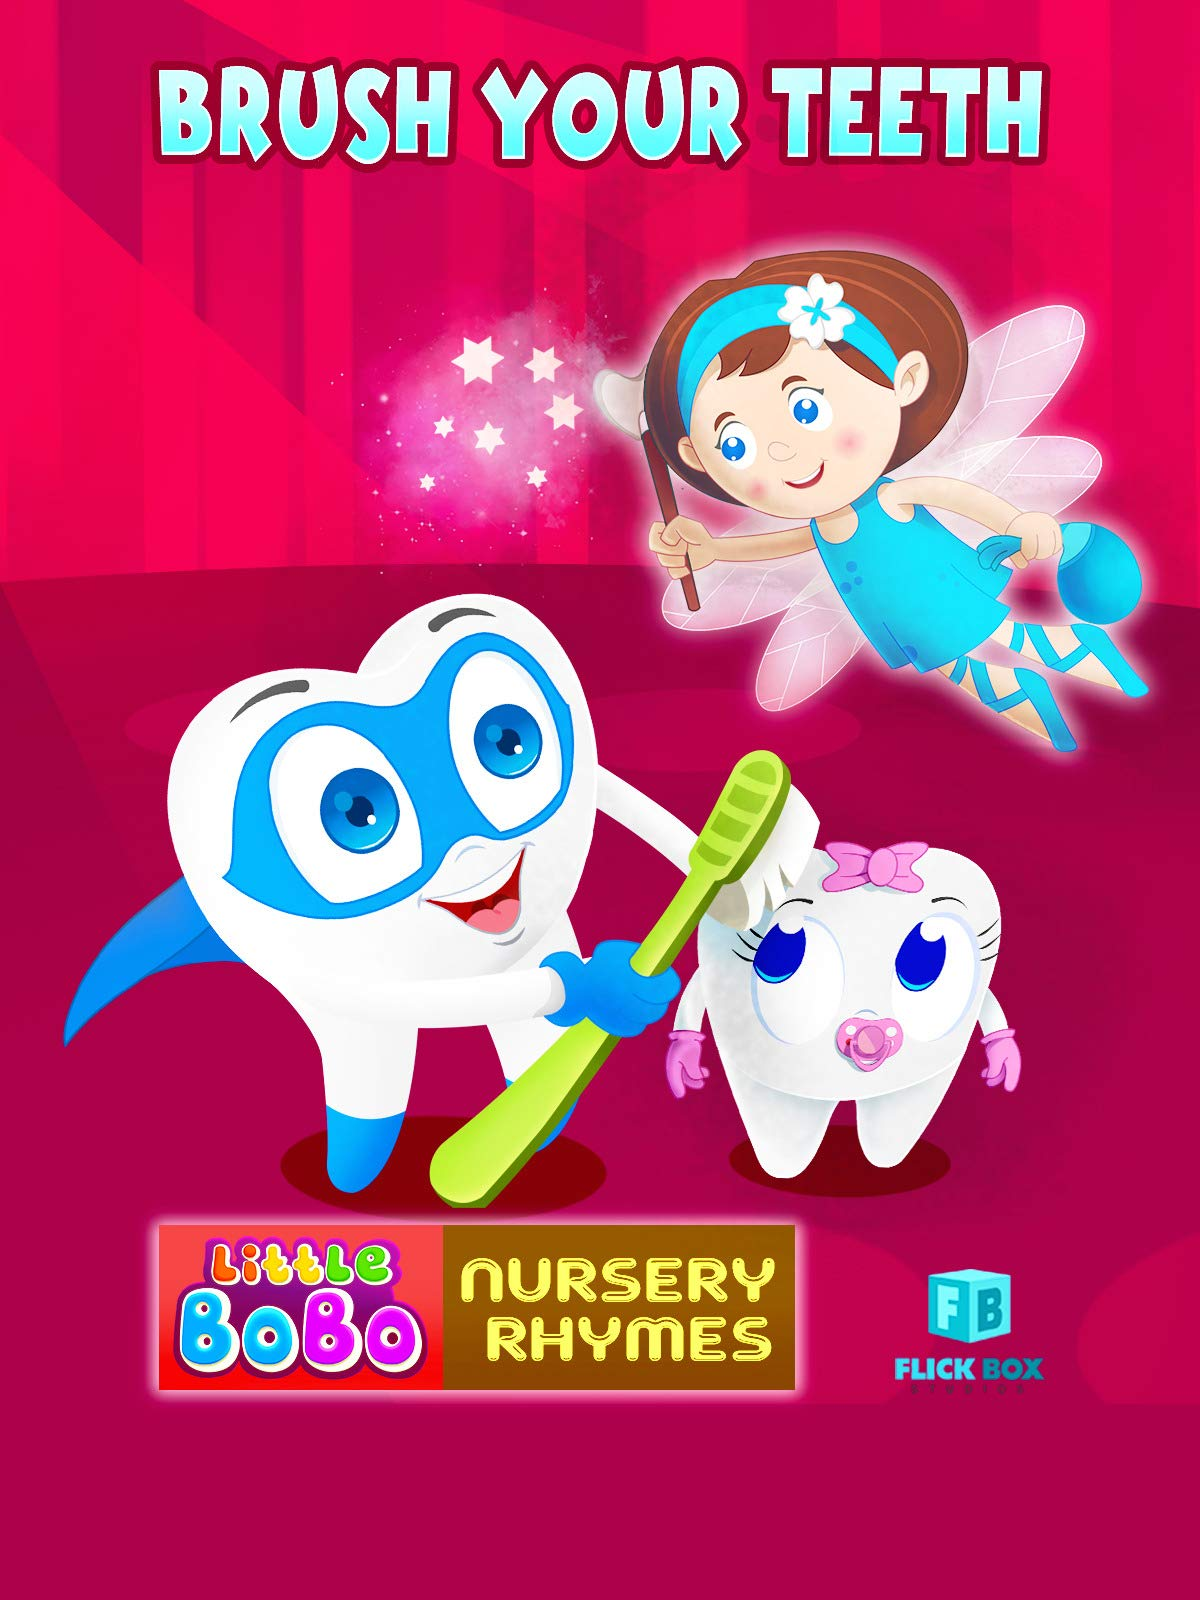 Brush Your Teeth Nursery Rhymes